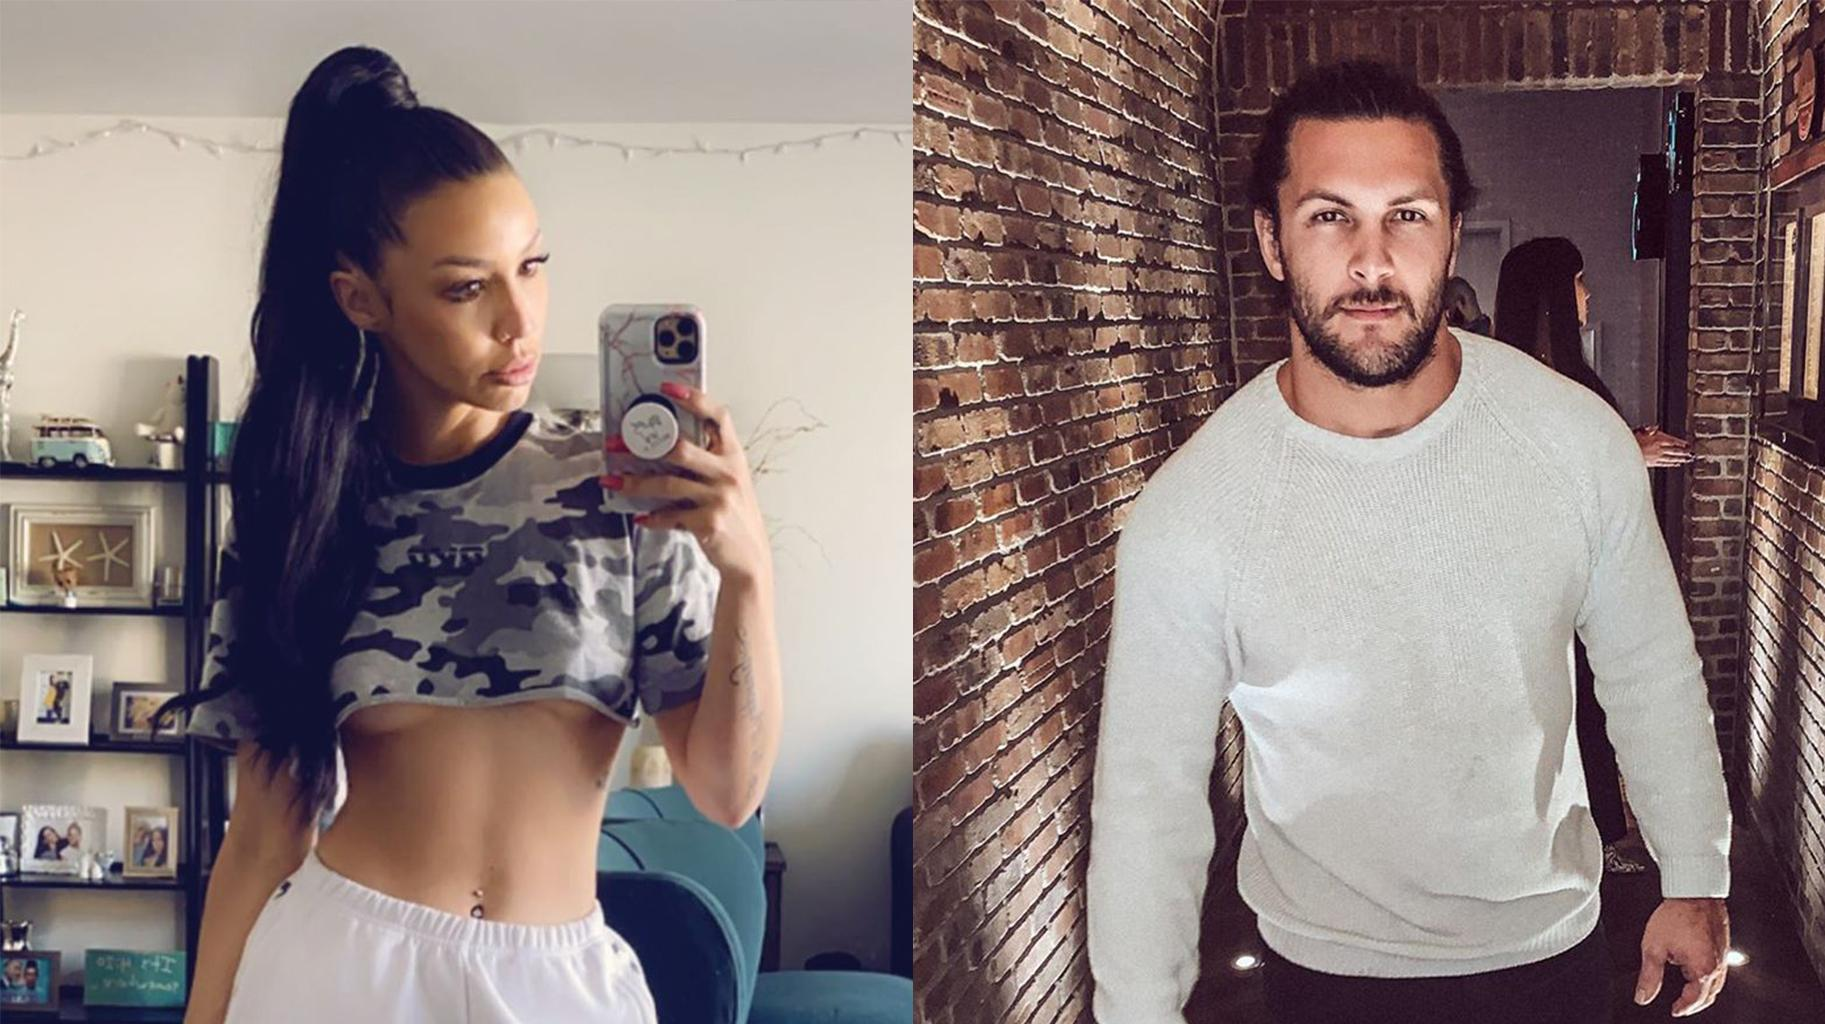 Scheana Marie Reveals Boyfriend Brock Davies Has Been 'So Angry' After Miscarriage Brought Them Together